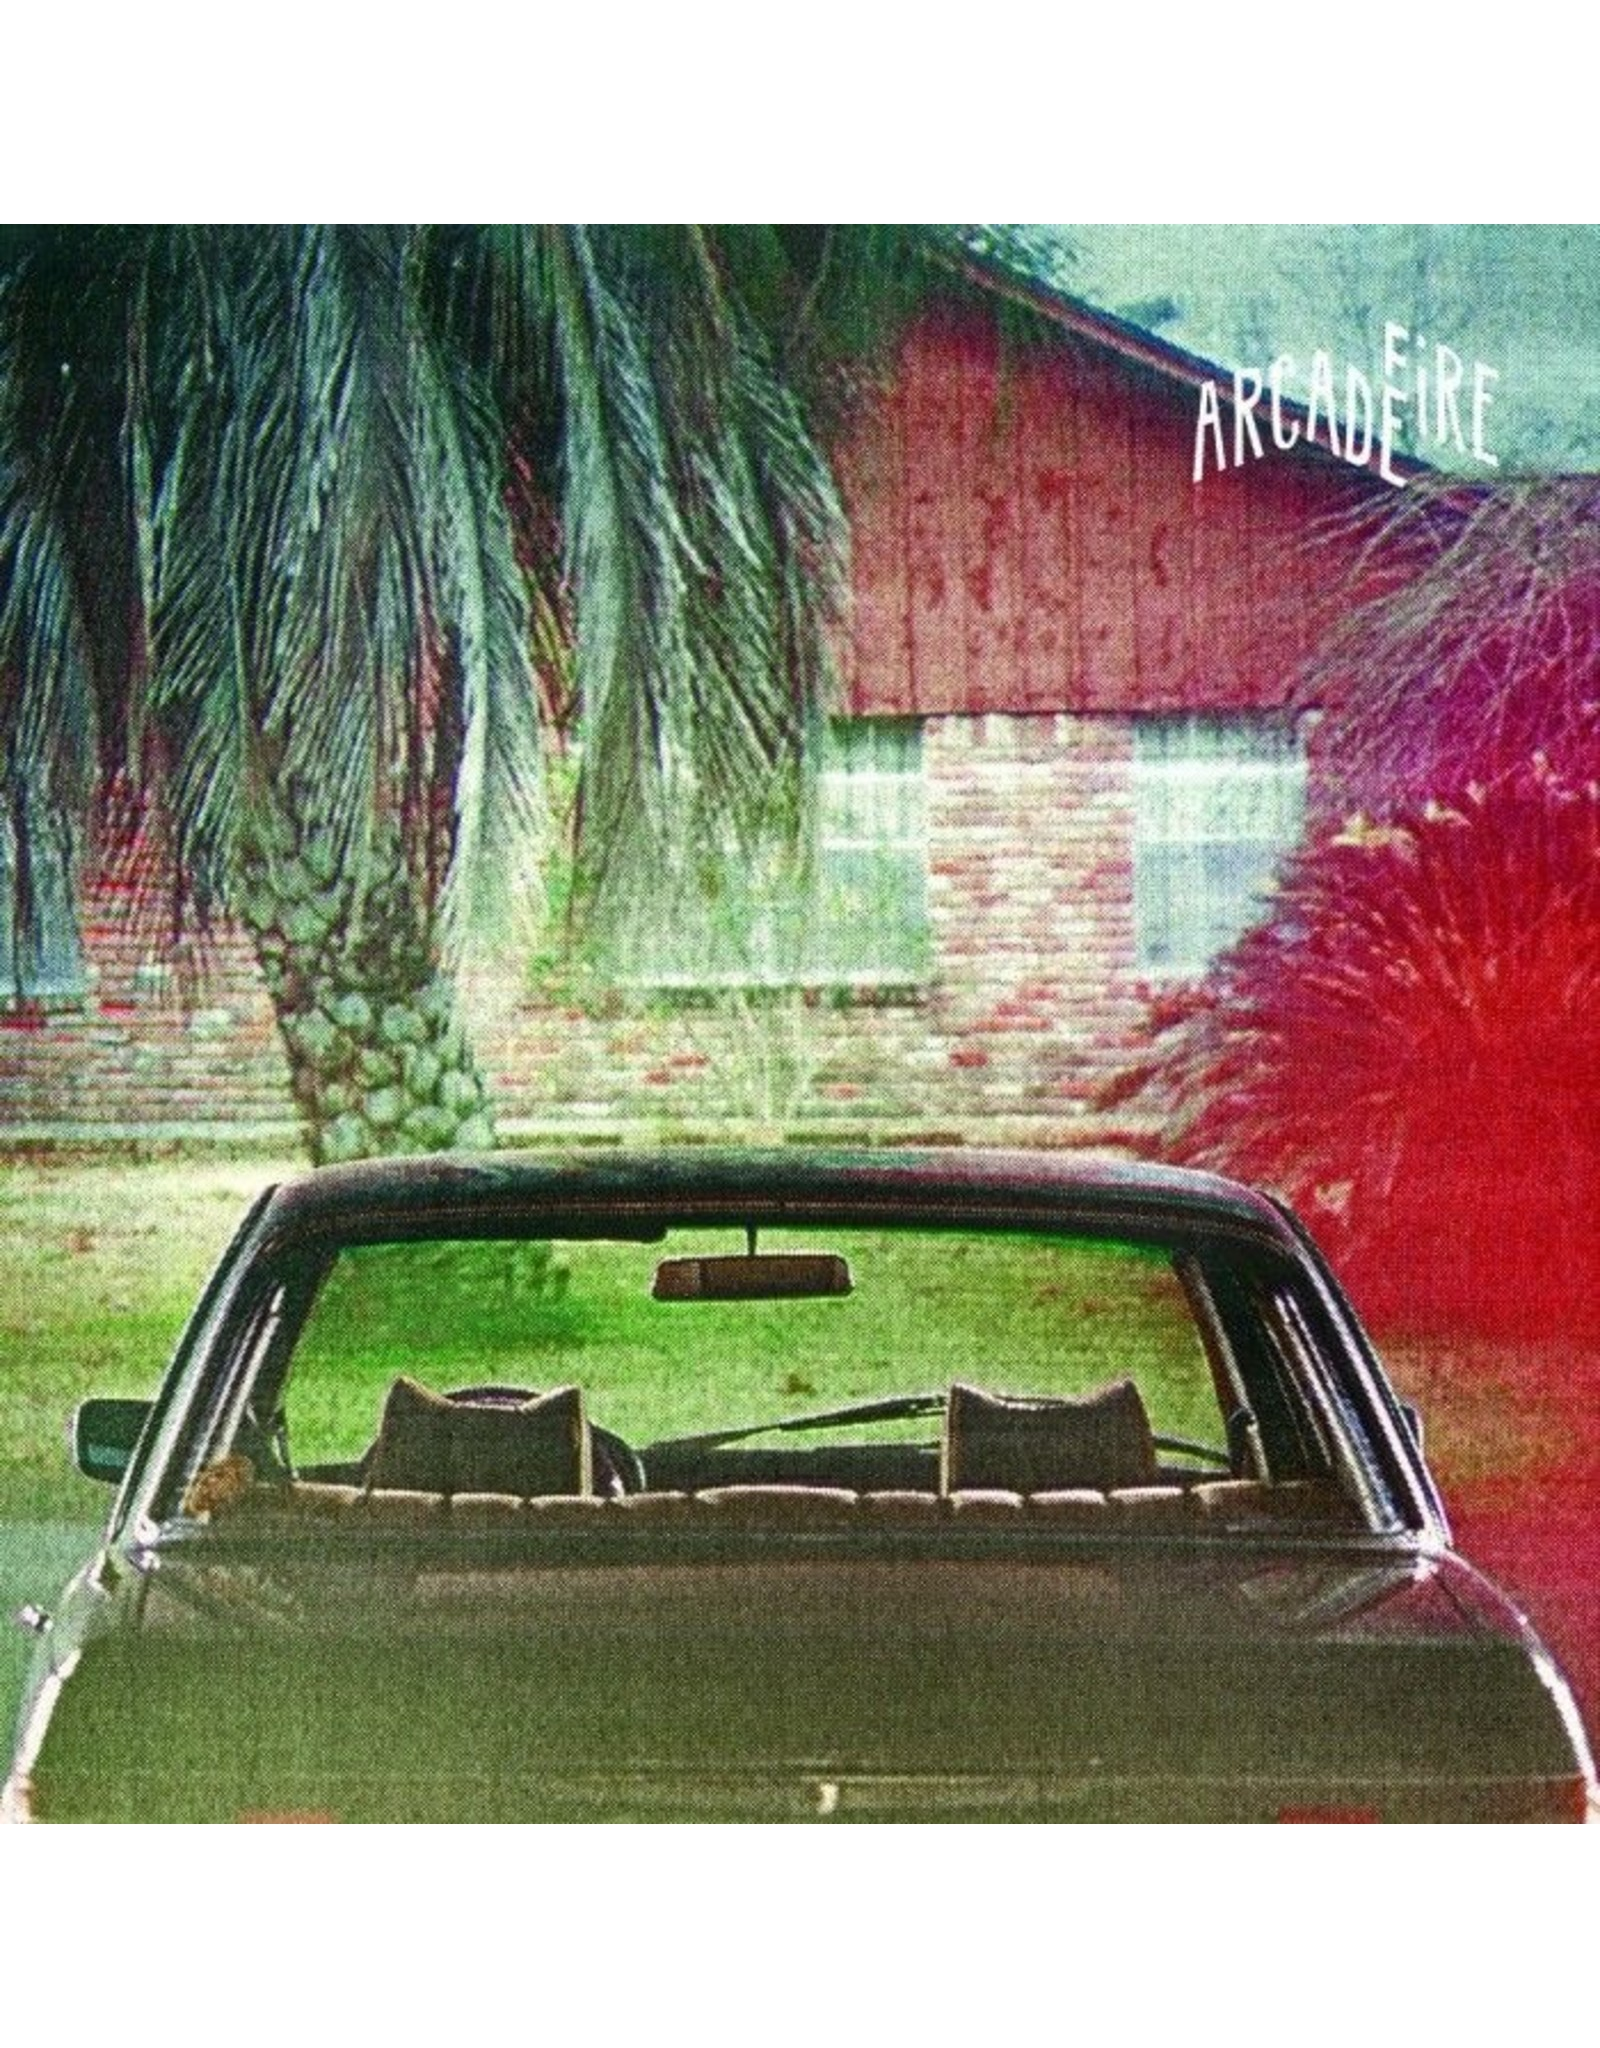 New Vinyl Arcade Fire - The Suburbs 2LP